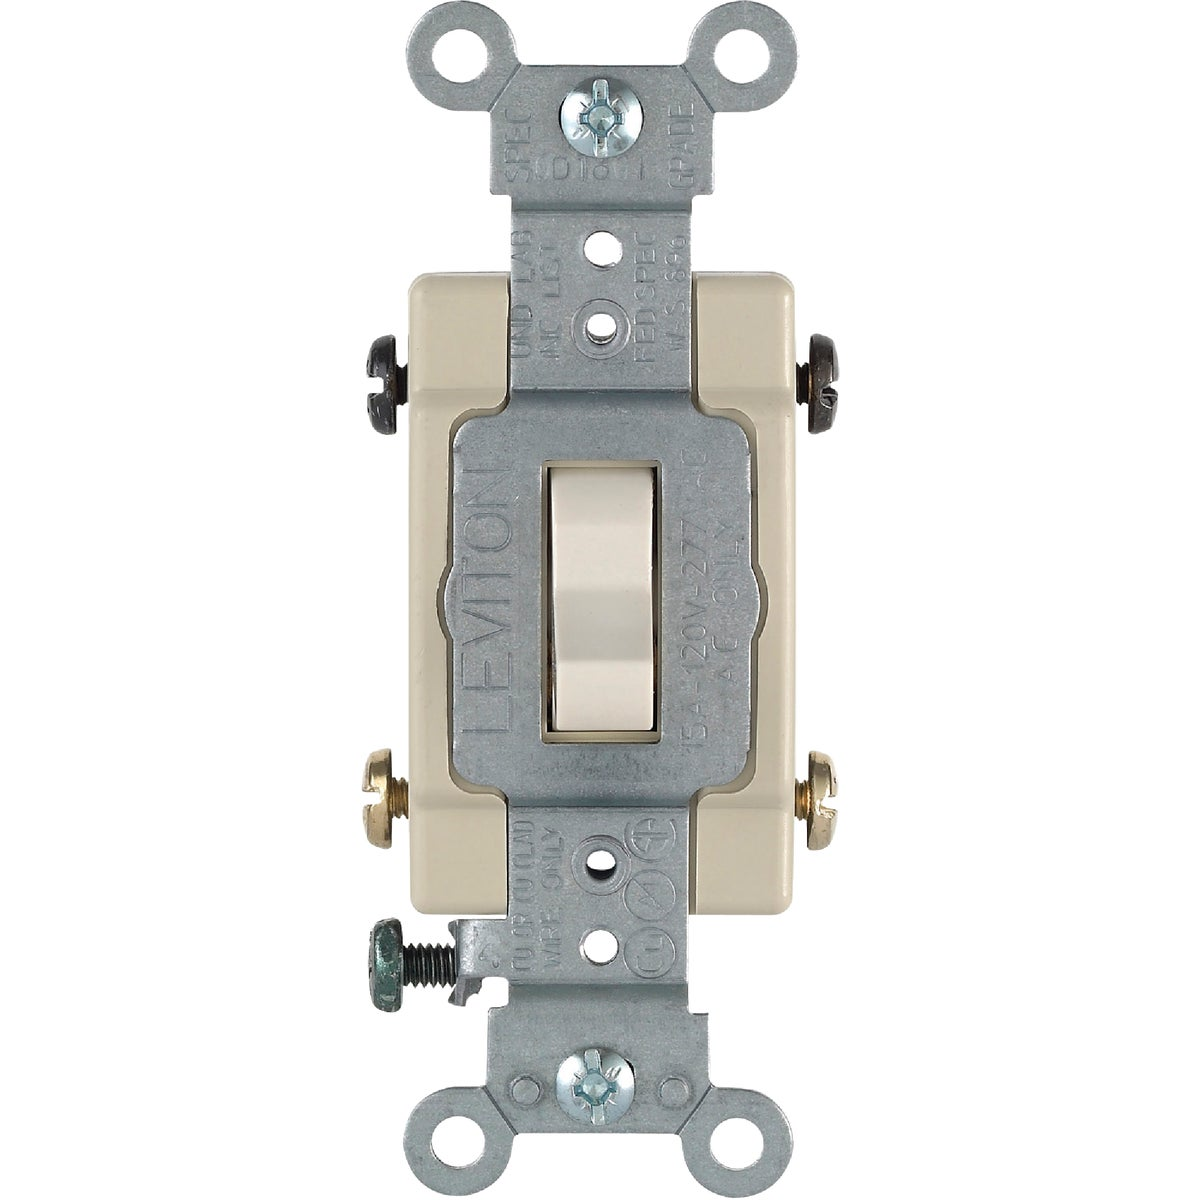 LT ALM 4-WAY SWITCH - S06-CS415-2TS by Leviton Mfg Co